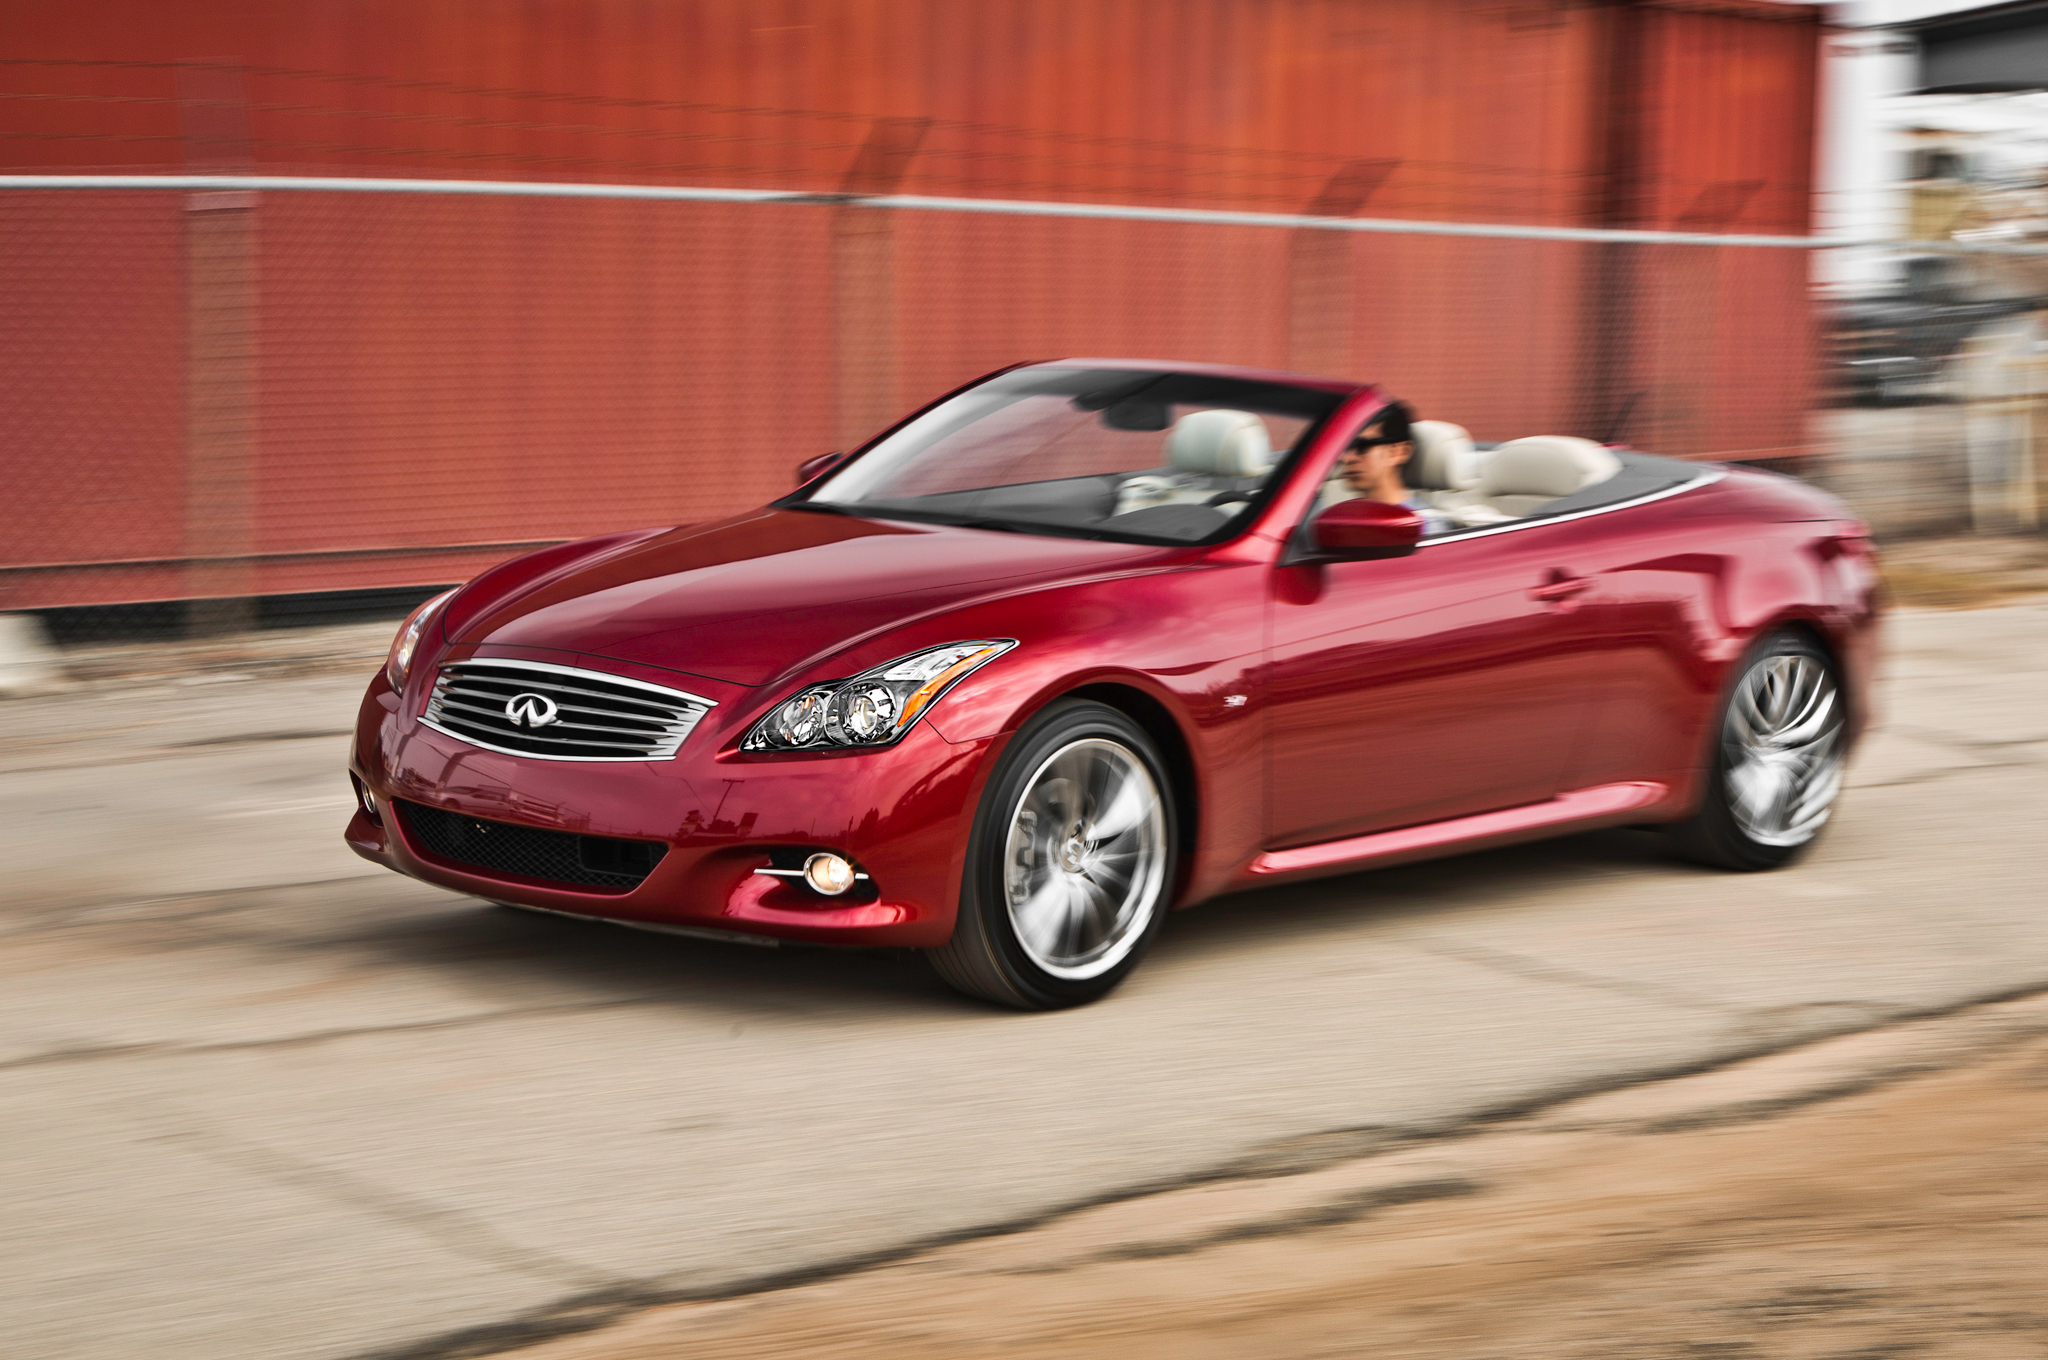 39 Best 2020 Infiniti Q60 Coupe Convertible Redesign and Concept